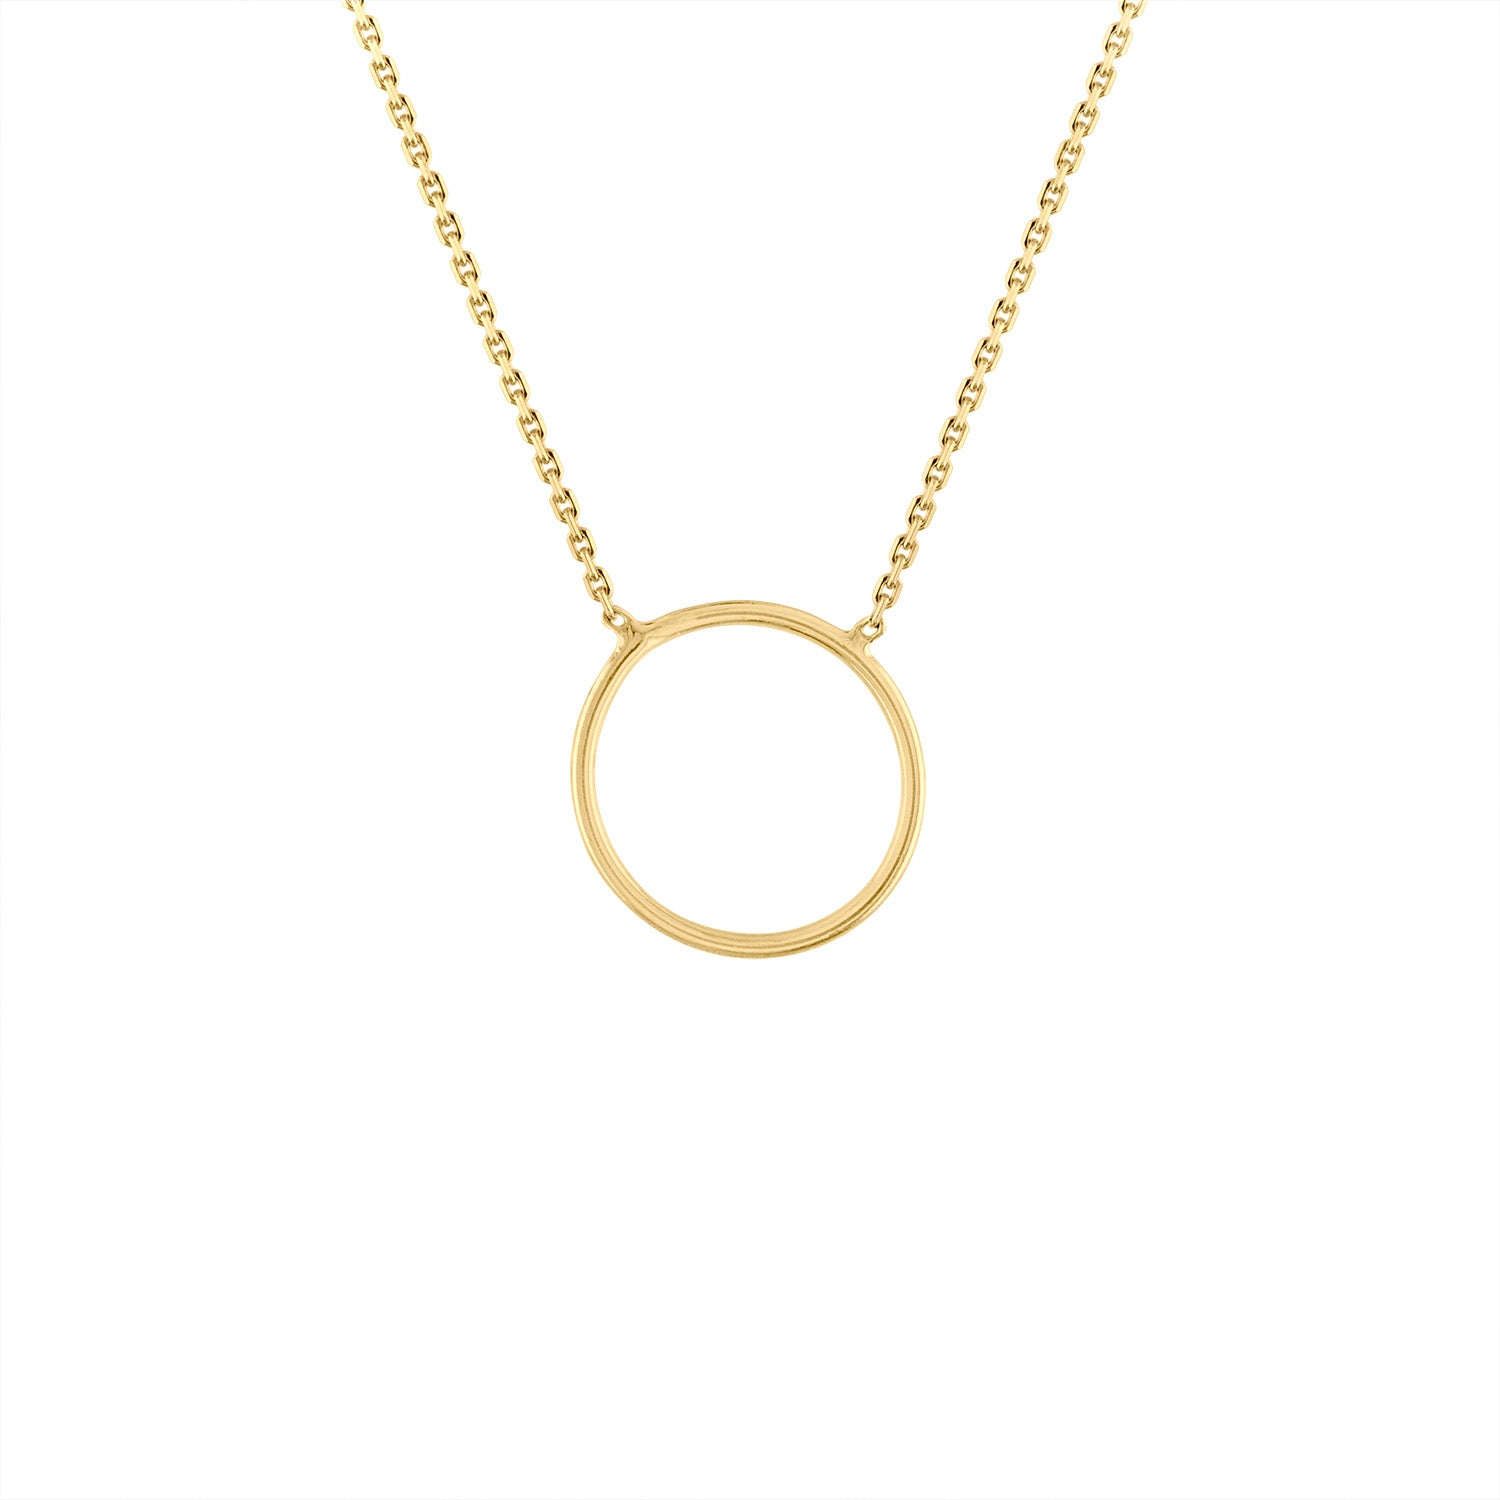 14KT GOLD PLAIN OPEN CIRCLE NECKLACE